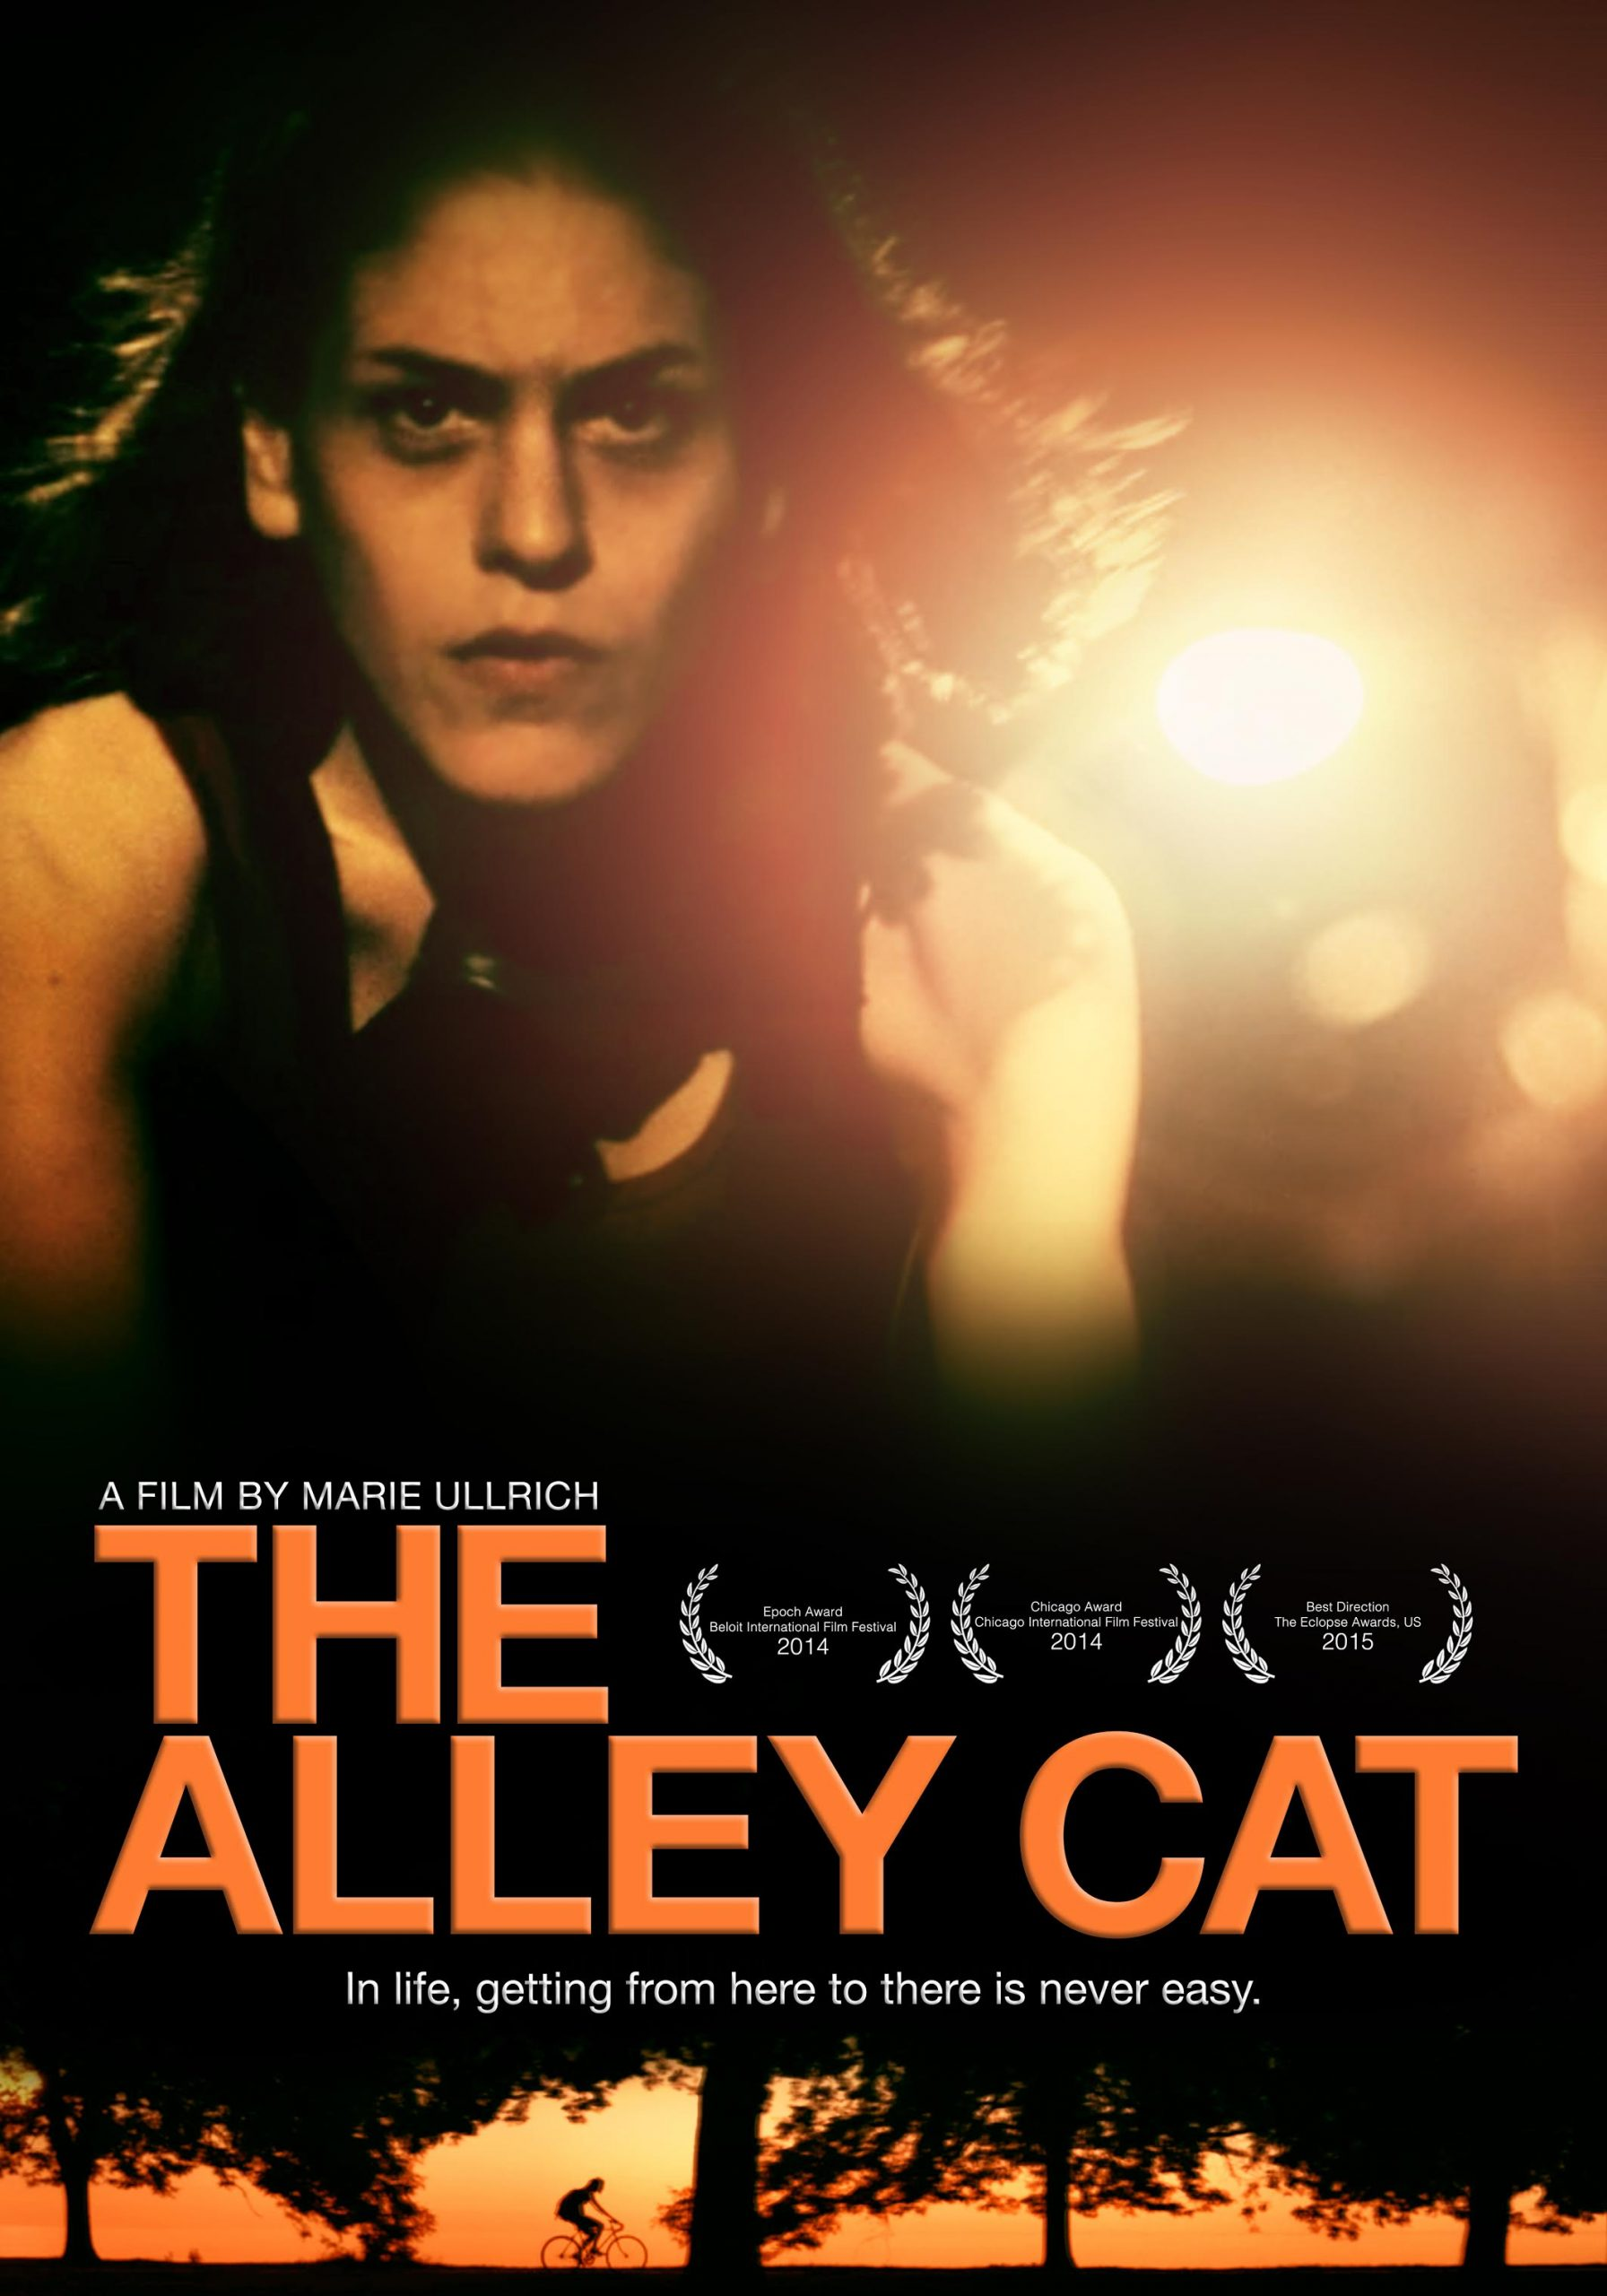 The Alley Cat